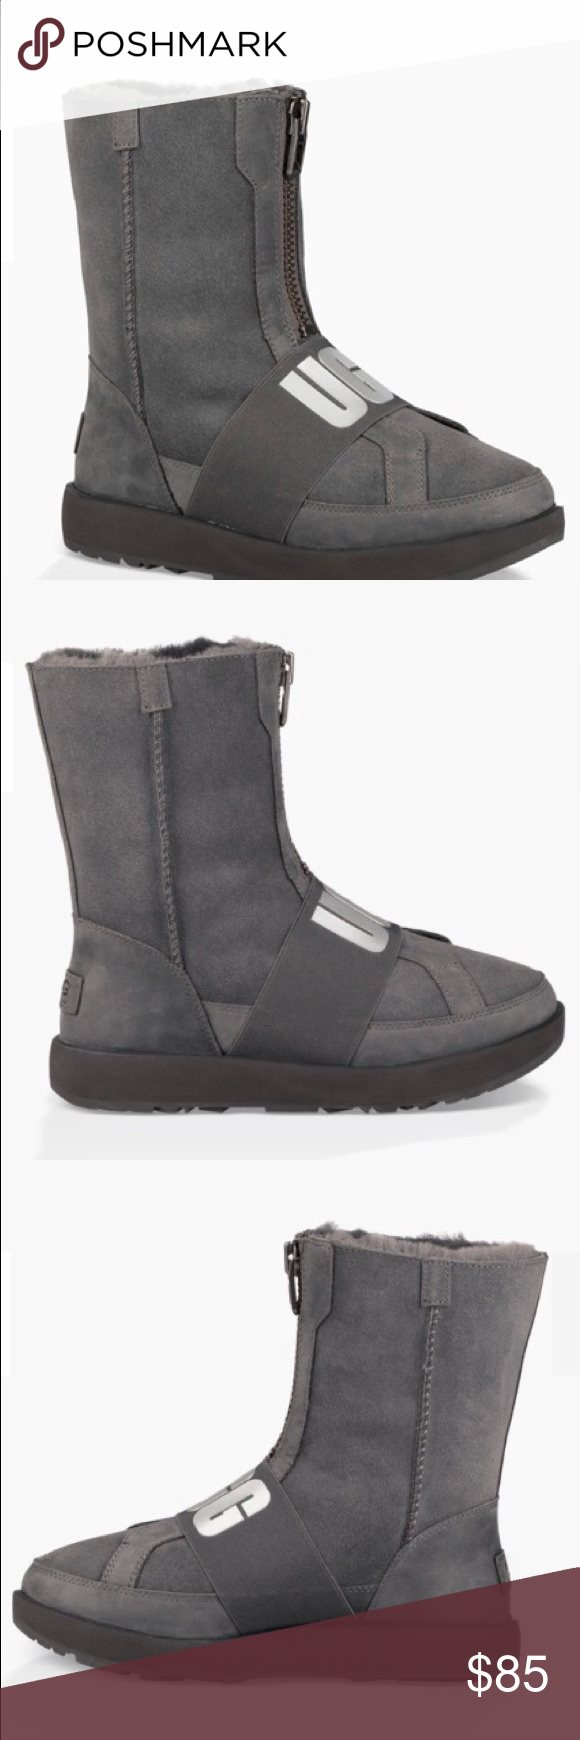 """8b441bce7e8 UGG CONNESS NWT Brand new NWT """"CONNESS """" UGG Black waterproof These ..."""